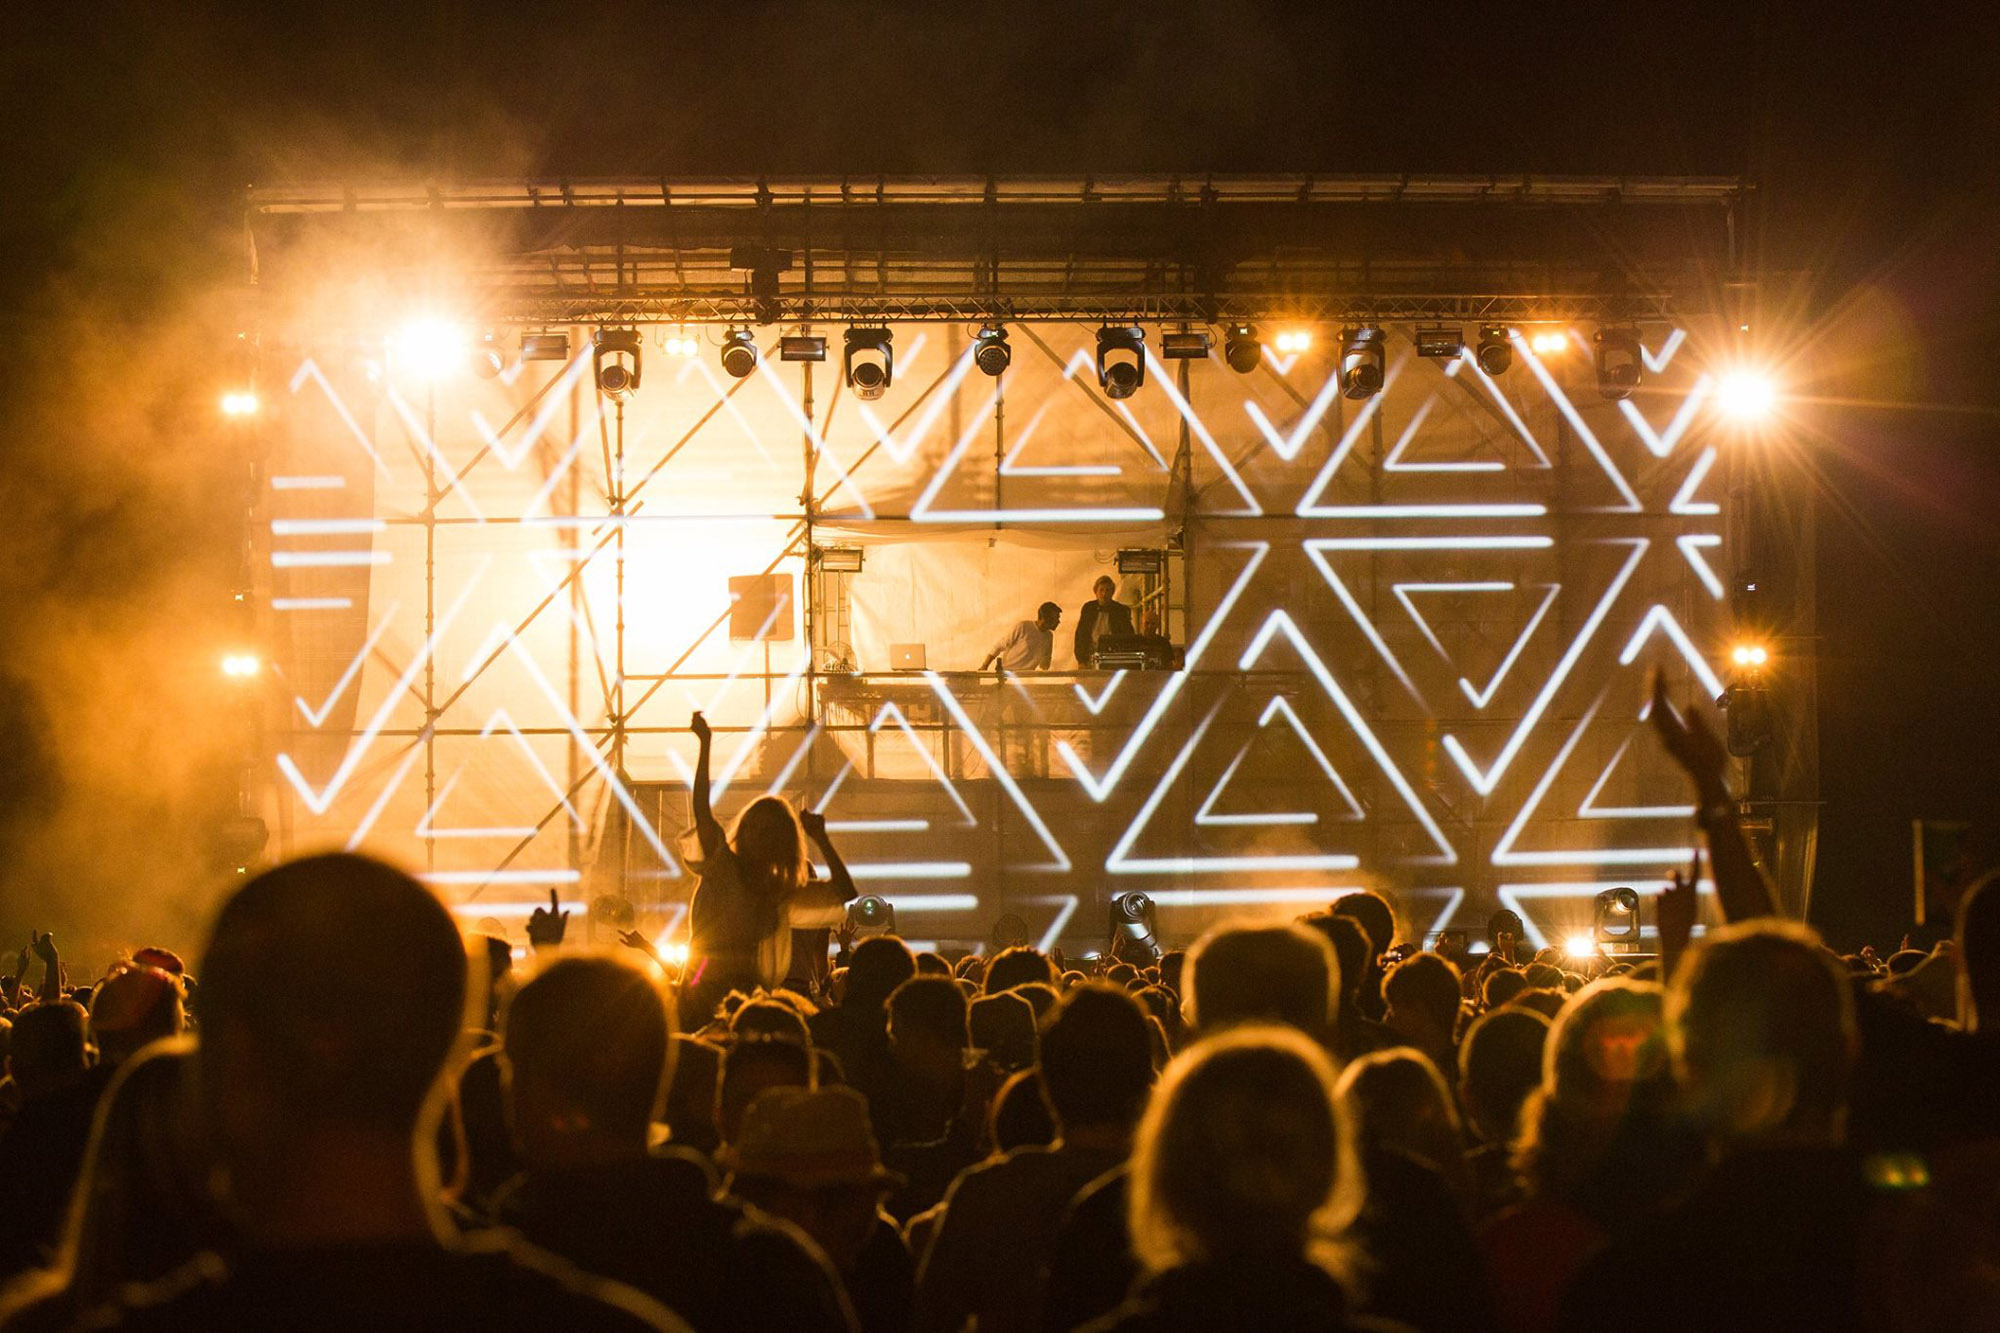 Groove music festival show projections, VJ set live